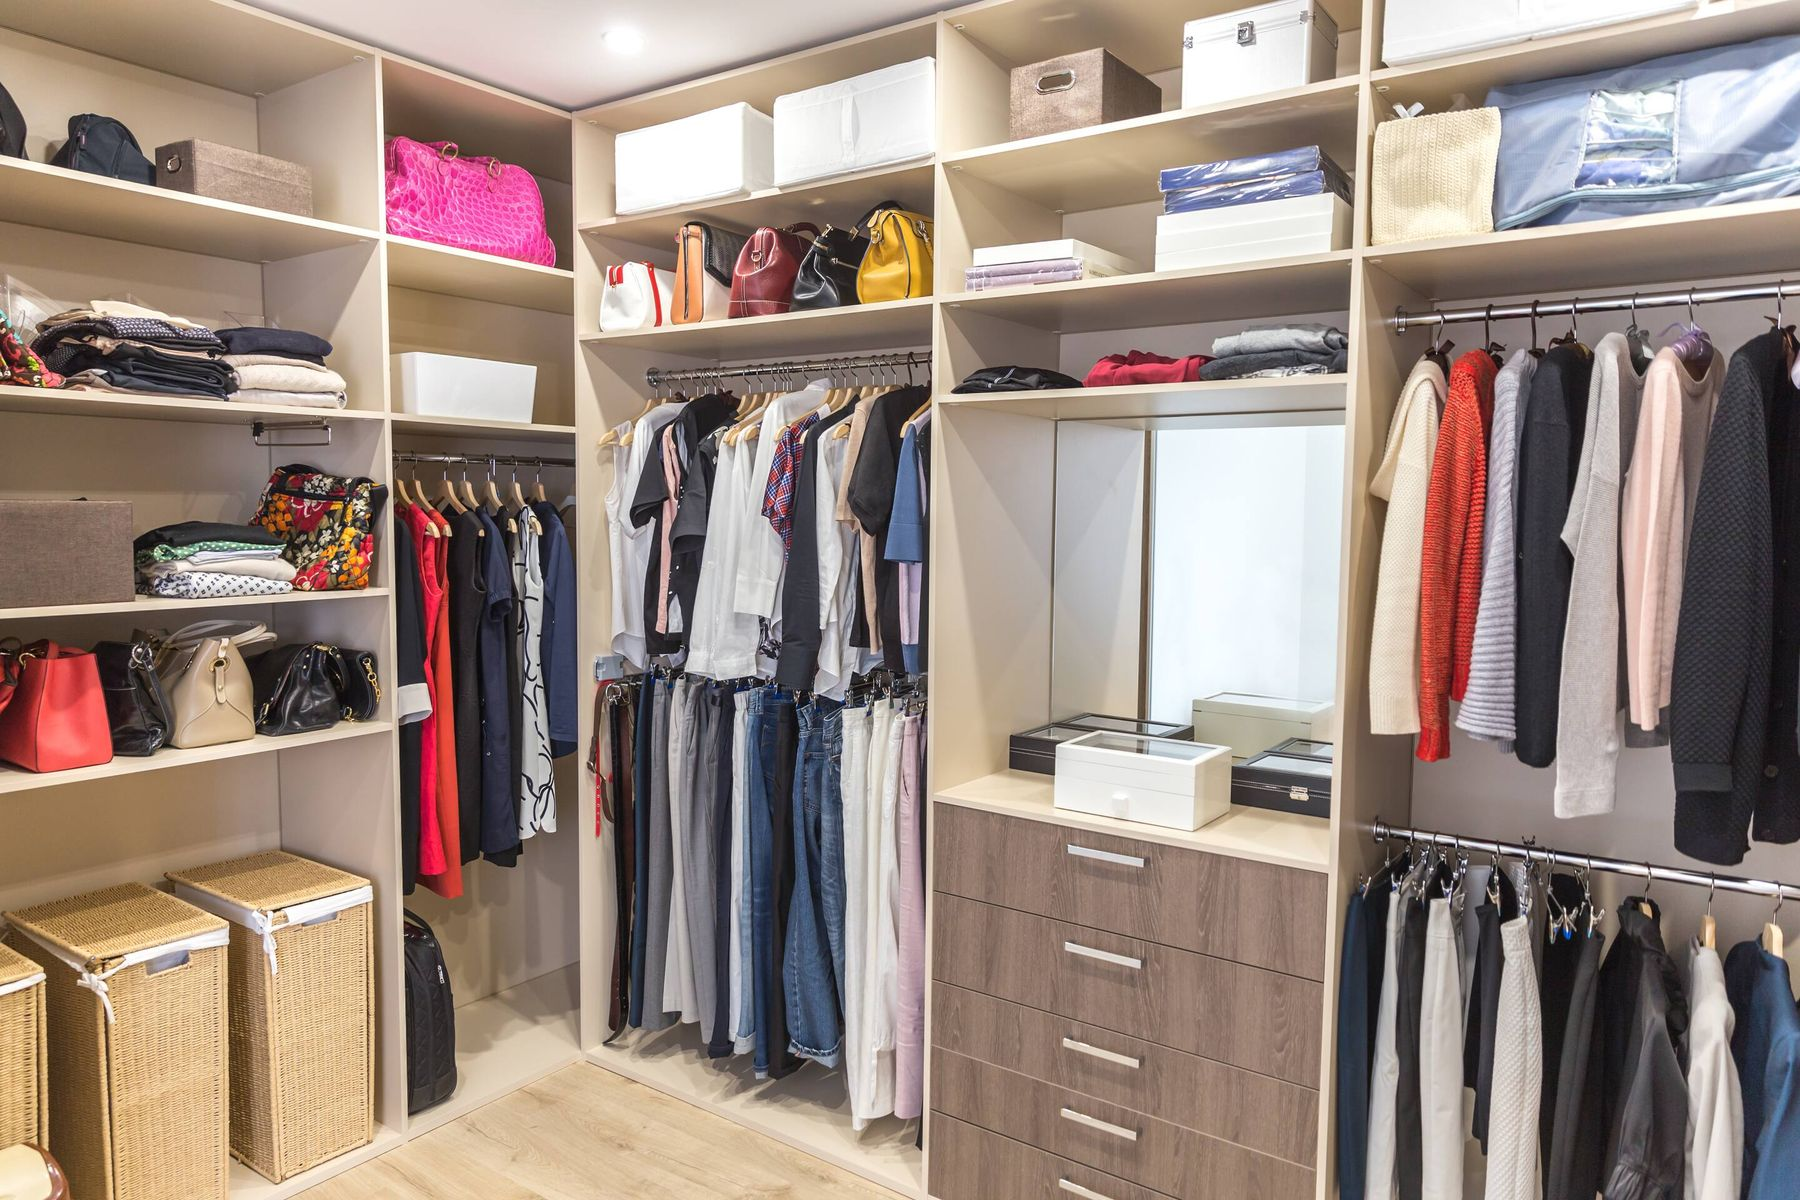 How to Clean Your Closet | Cleanipedia